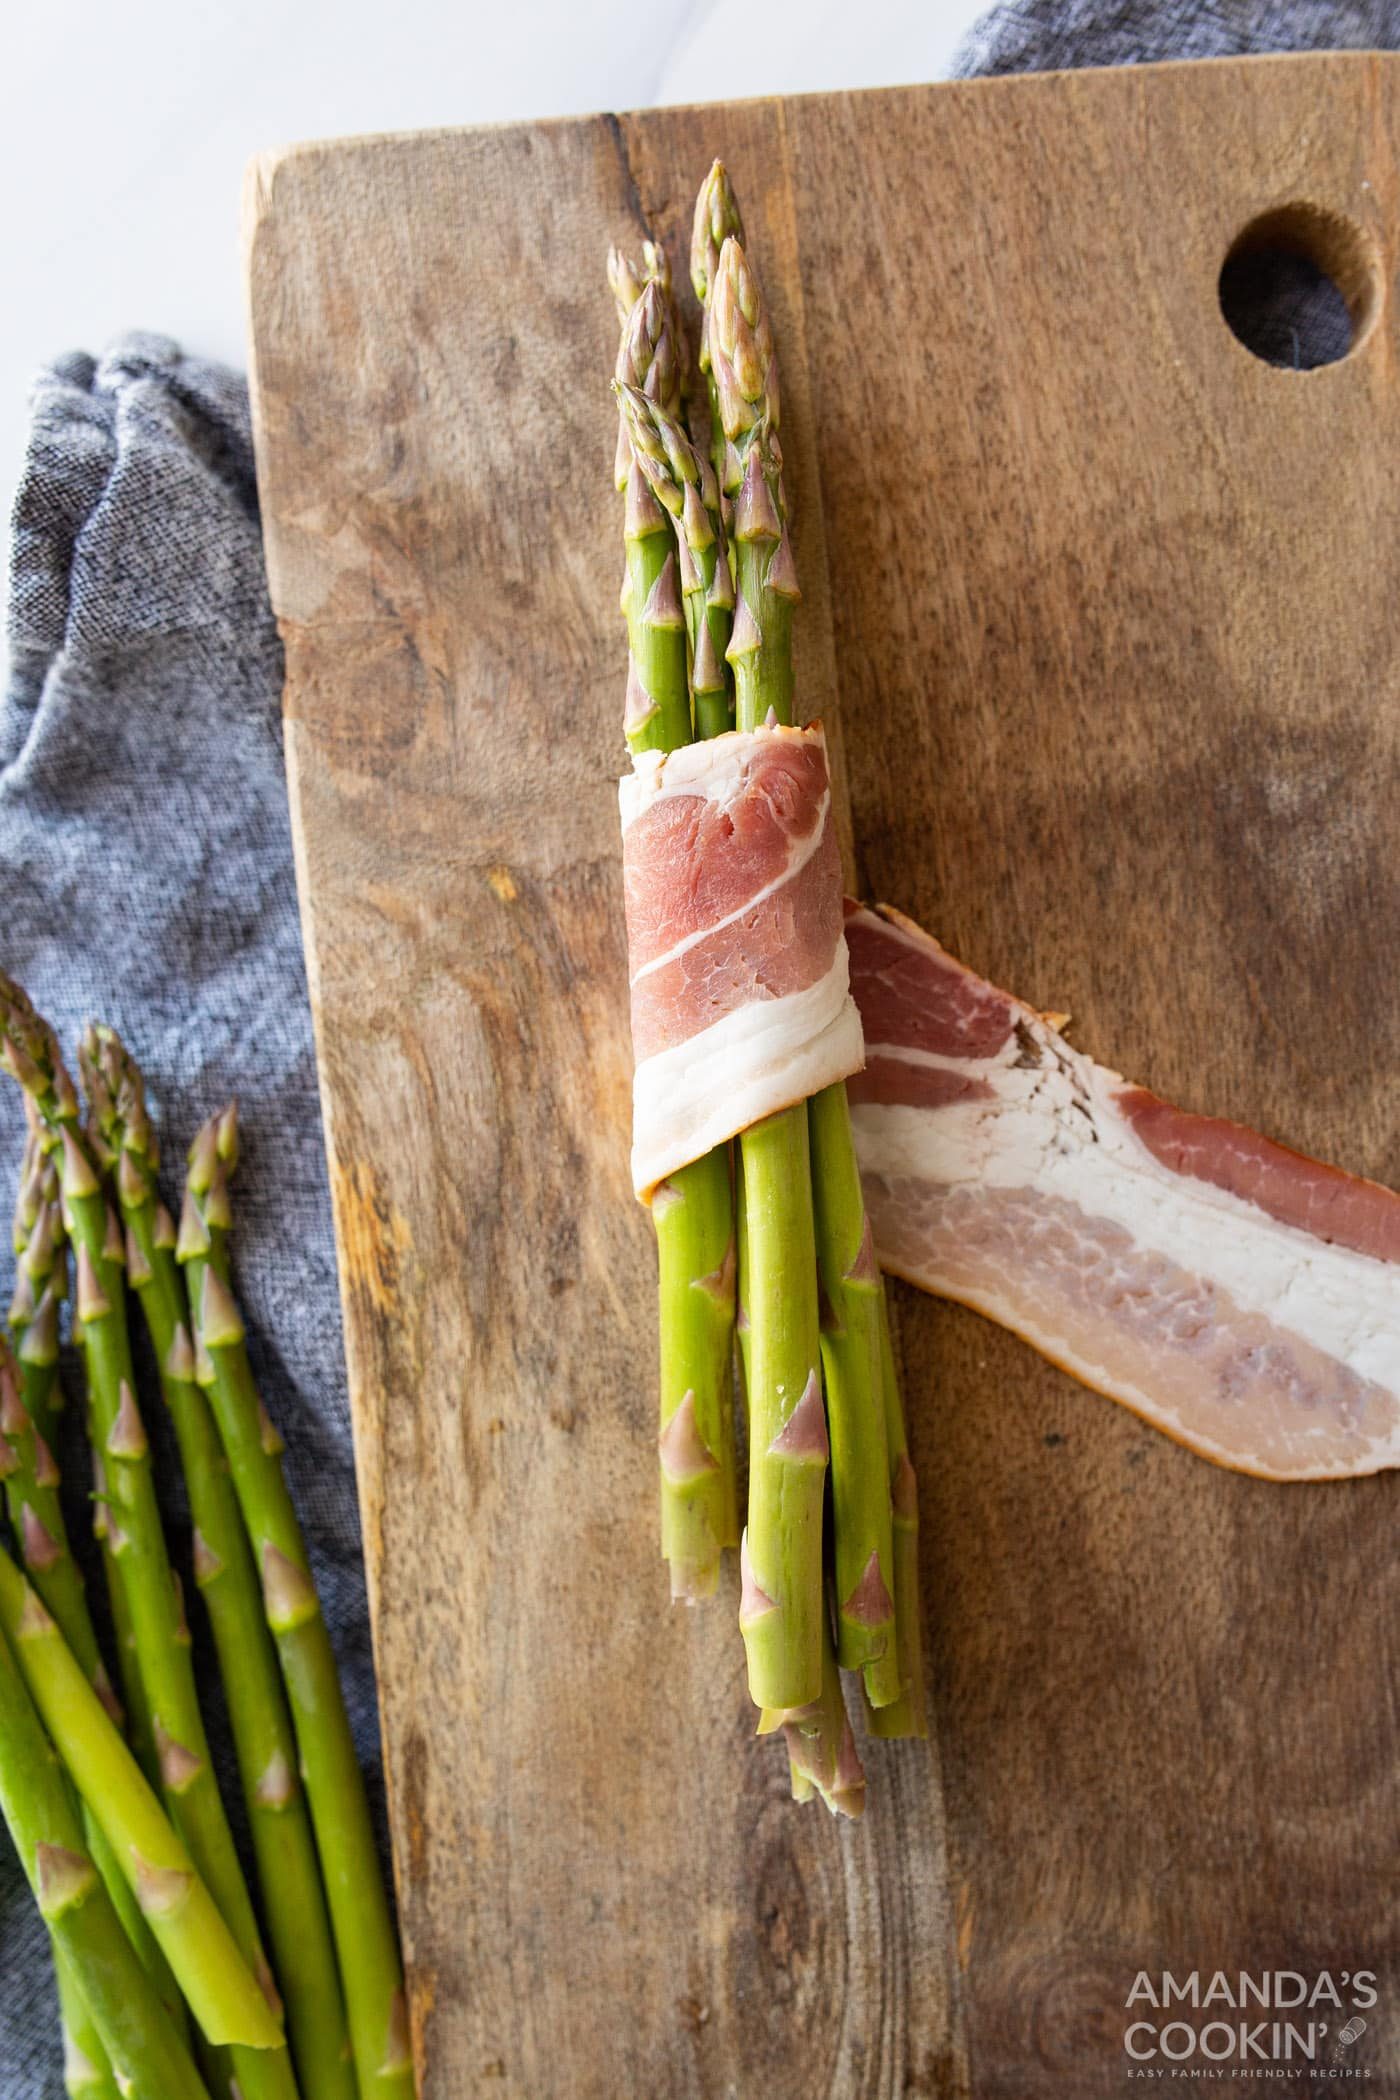 bacon wrapped around asparagus spears